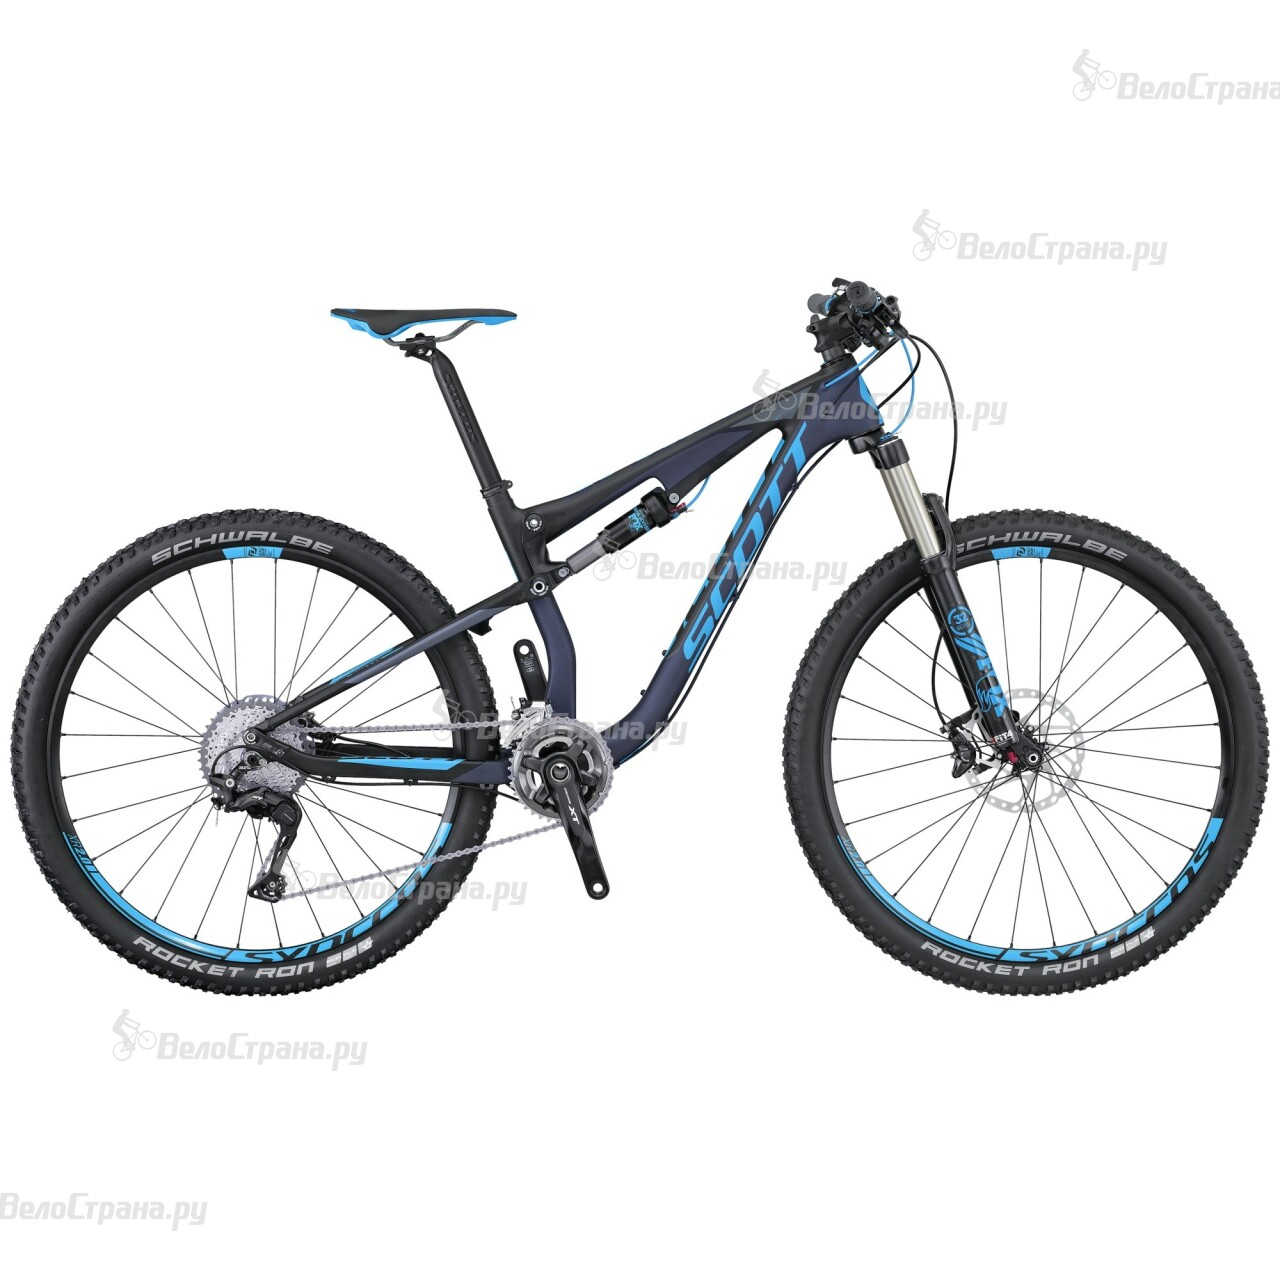 Велосипед Scott Contessa Spark 700 RC (2016)  велосипед scott contessa spark 700 rc 2016